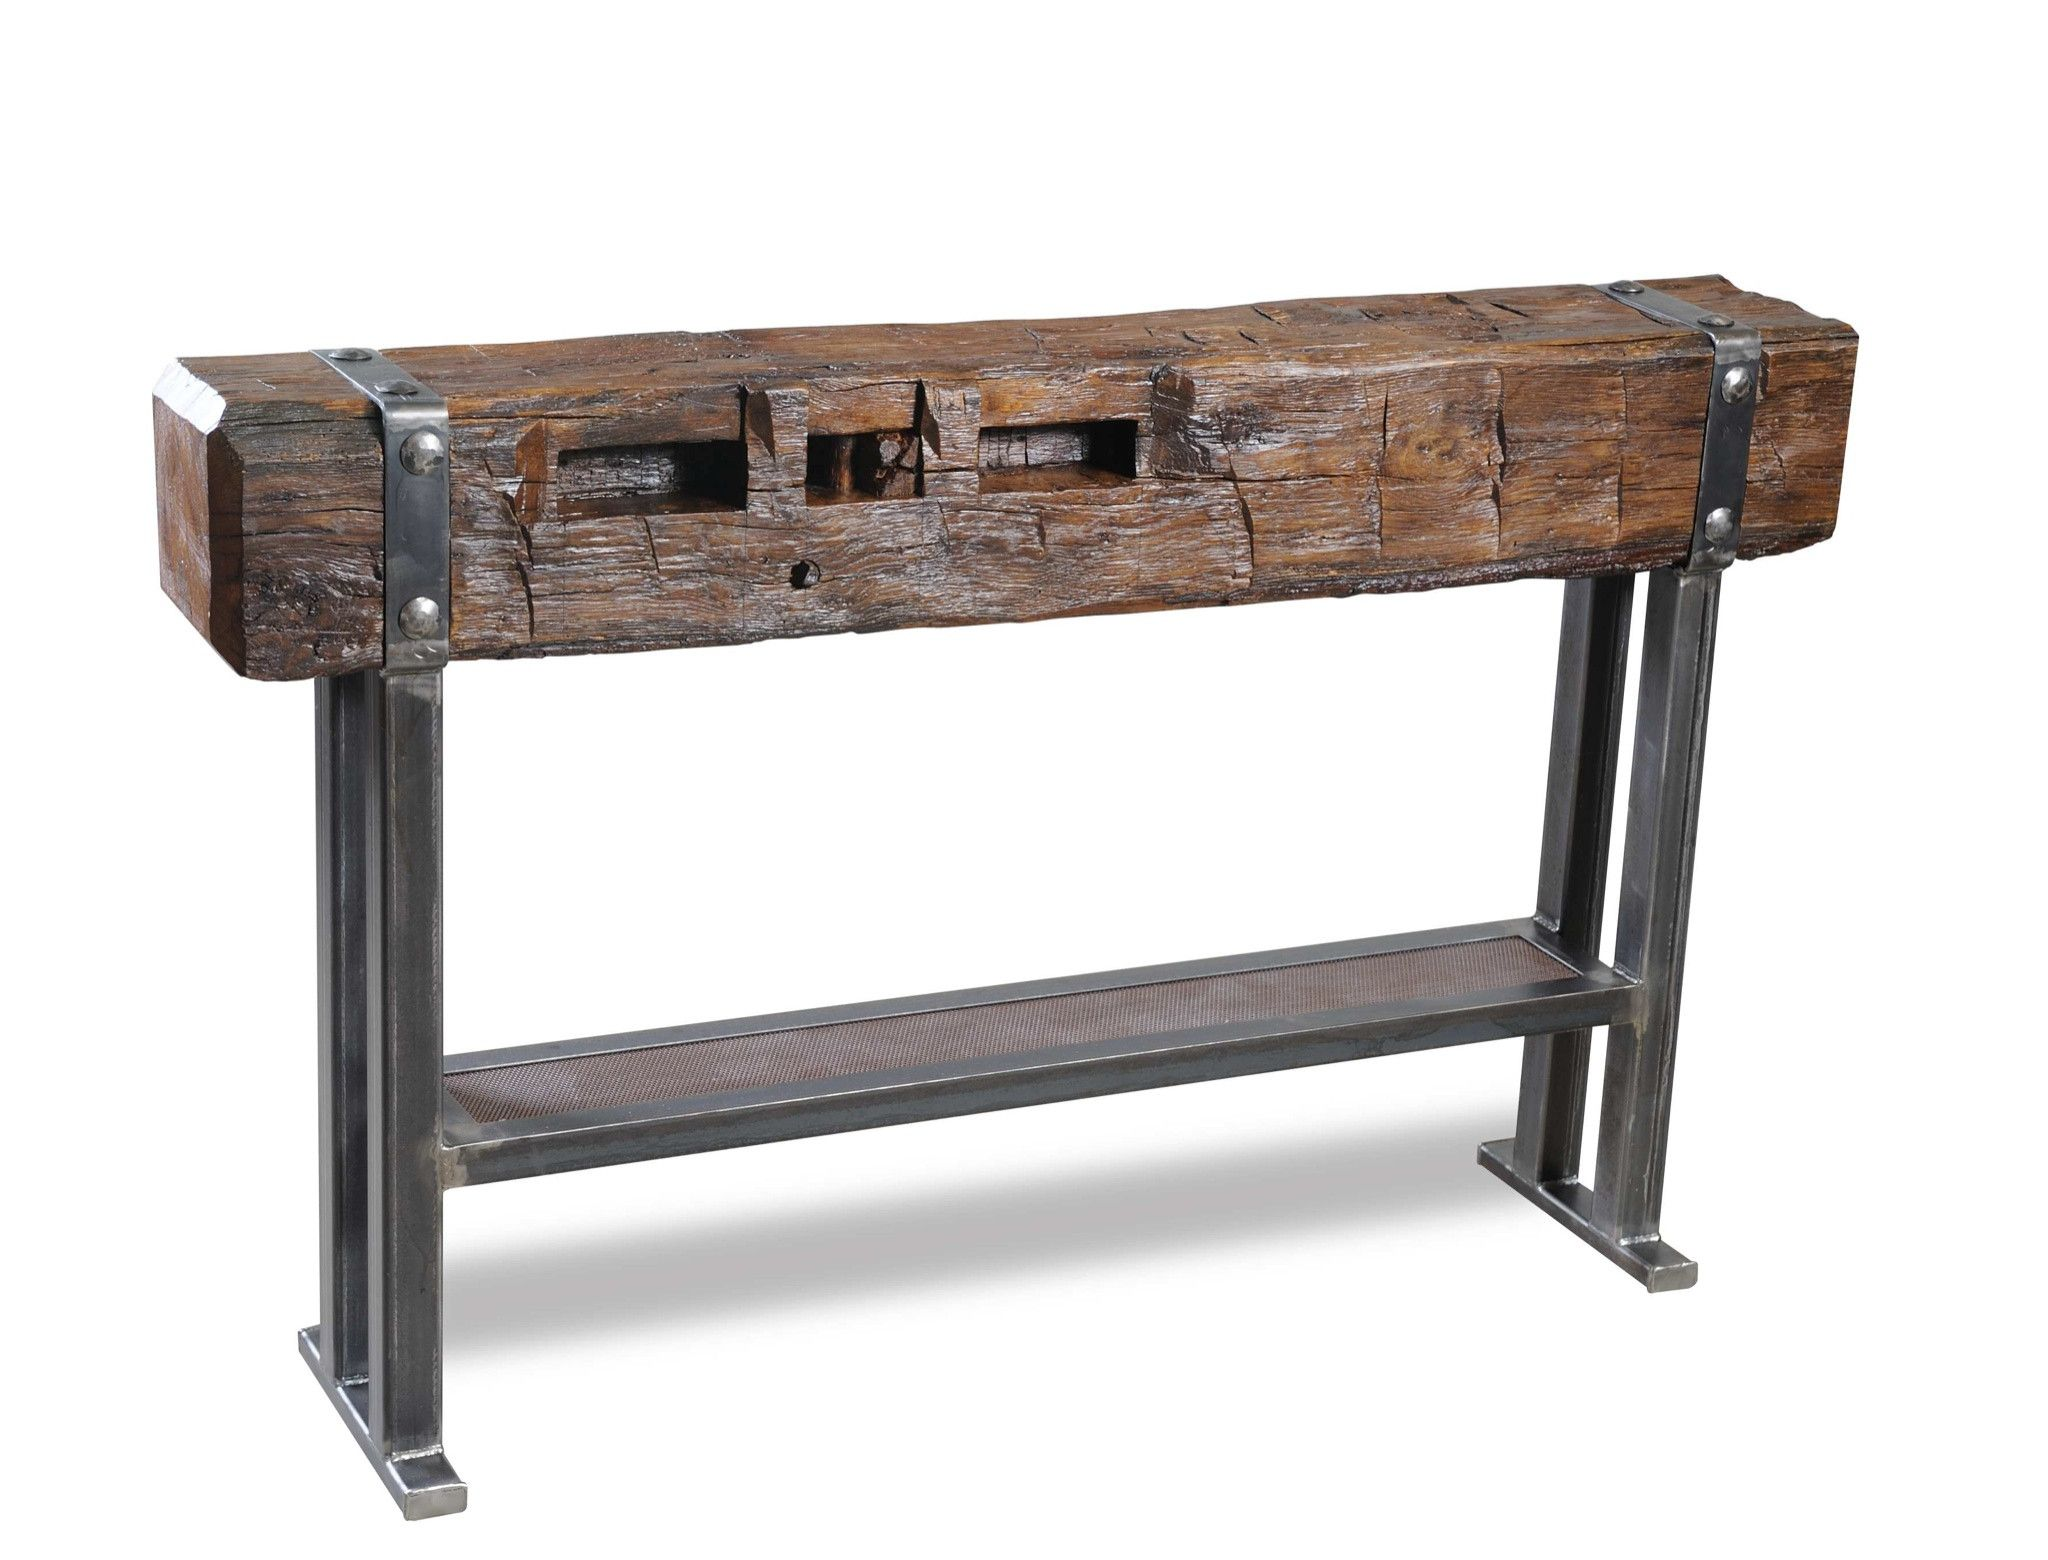 60 inch reclaimed wood console table wood creations pinterest 60 inch reclaimed wood console table geotapseo Gallery